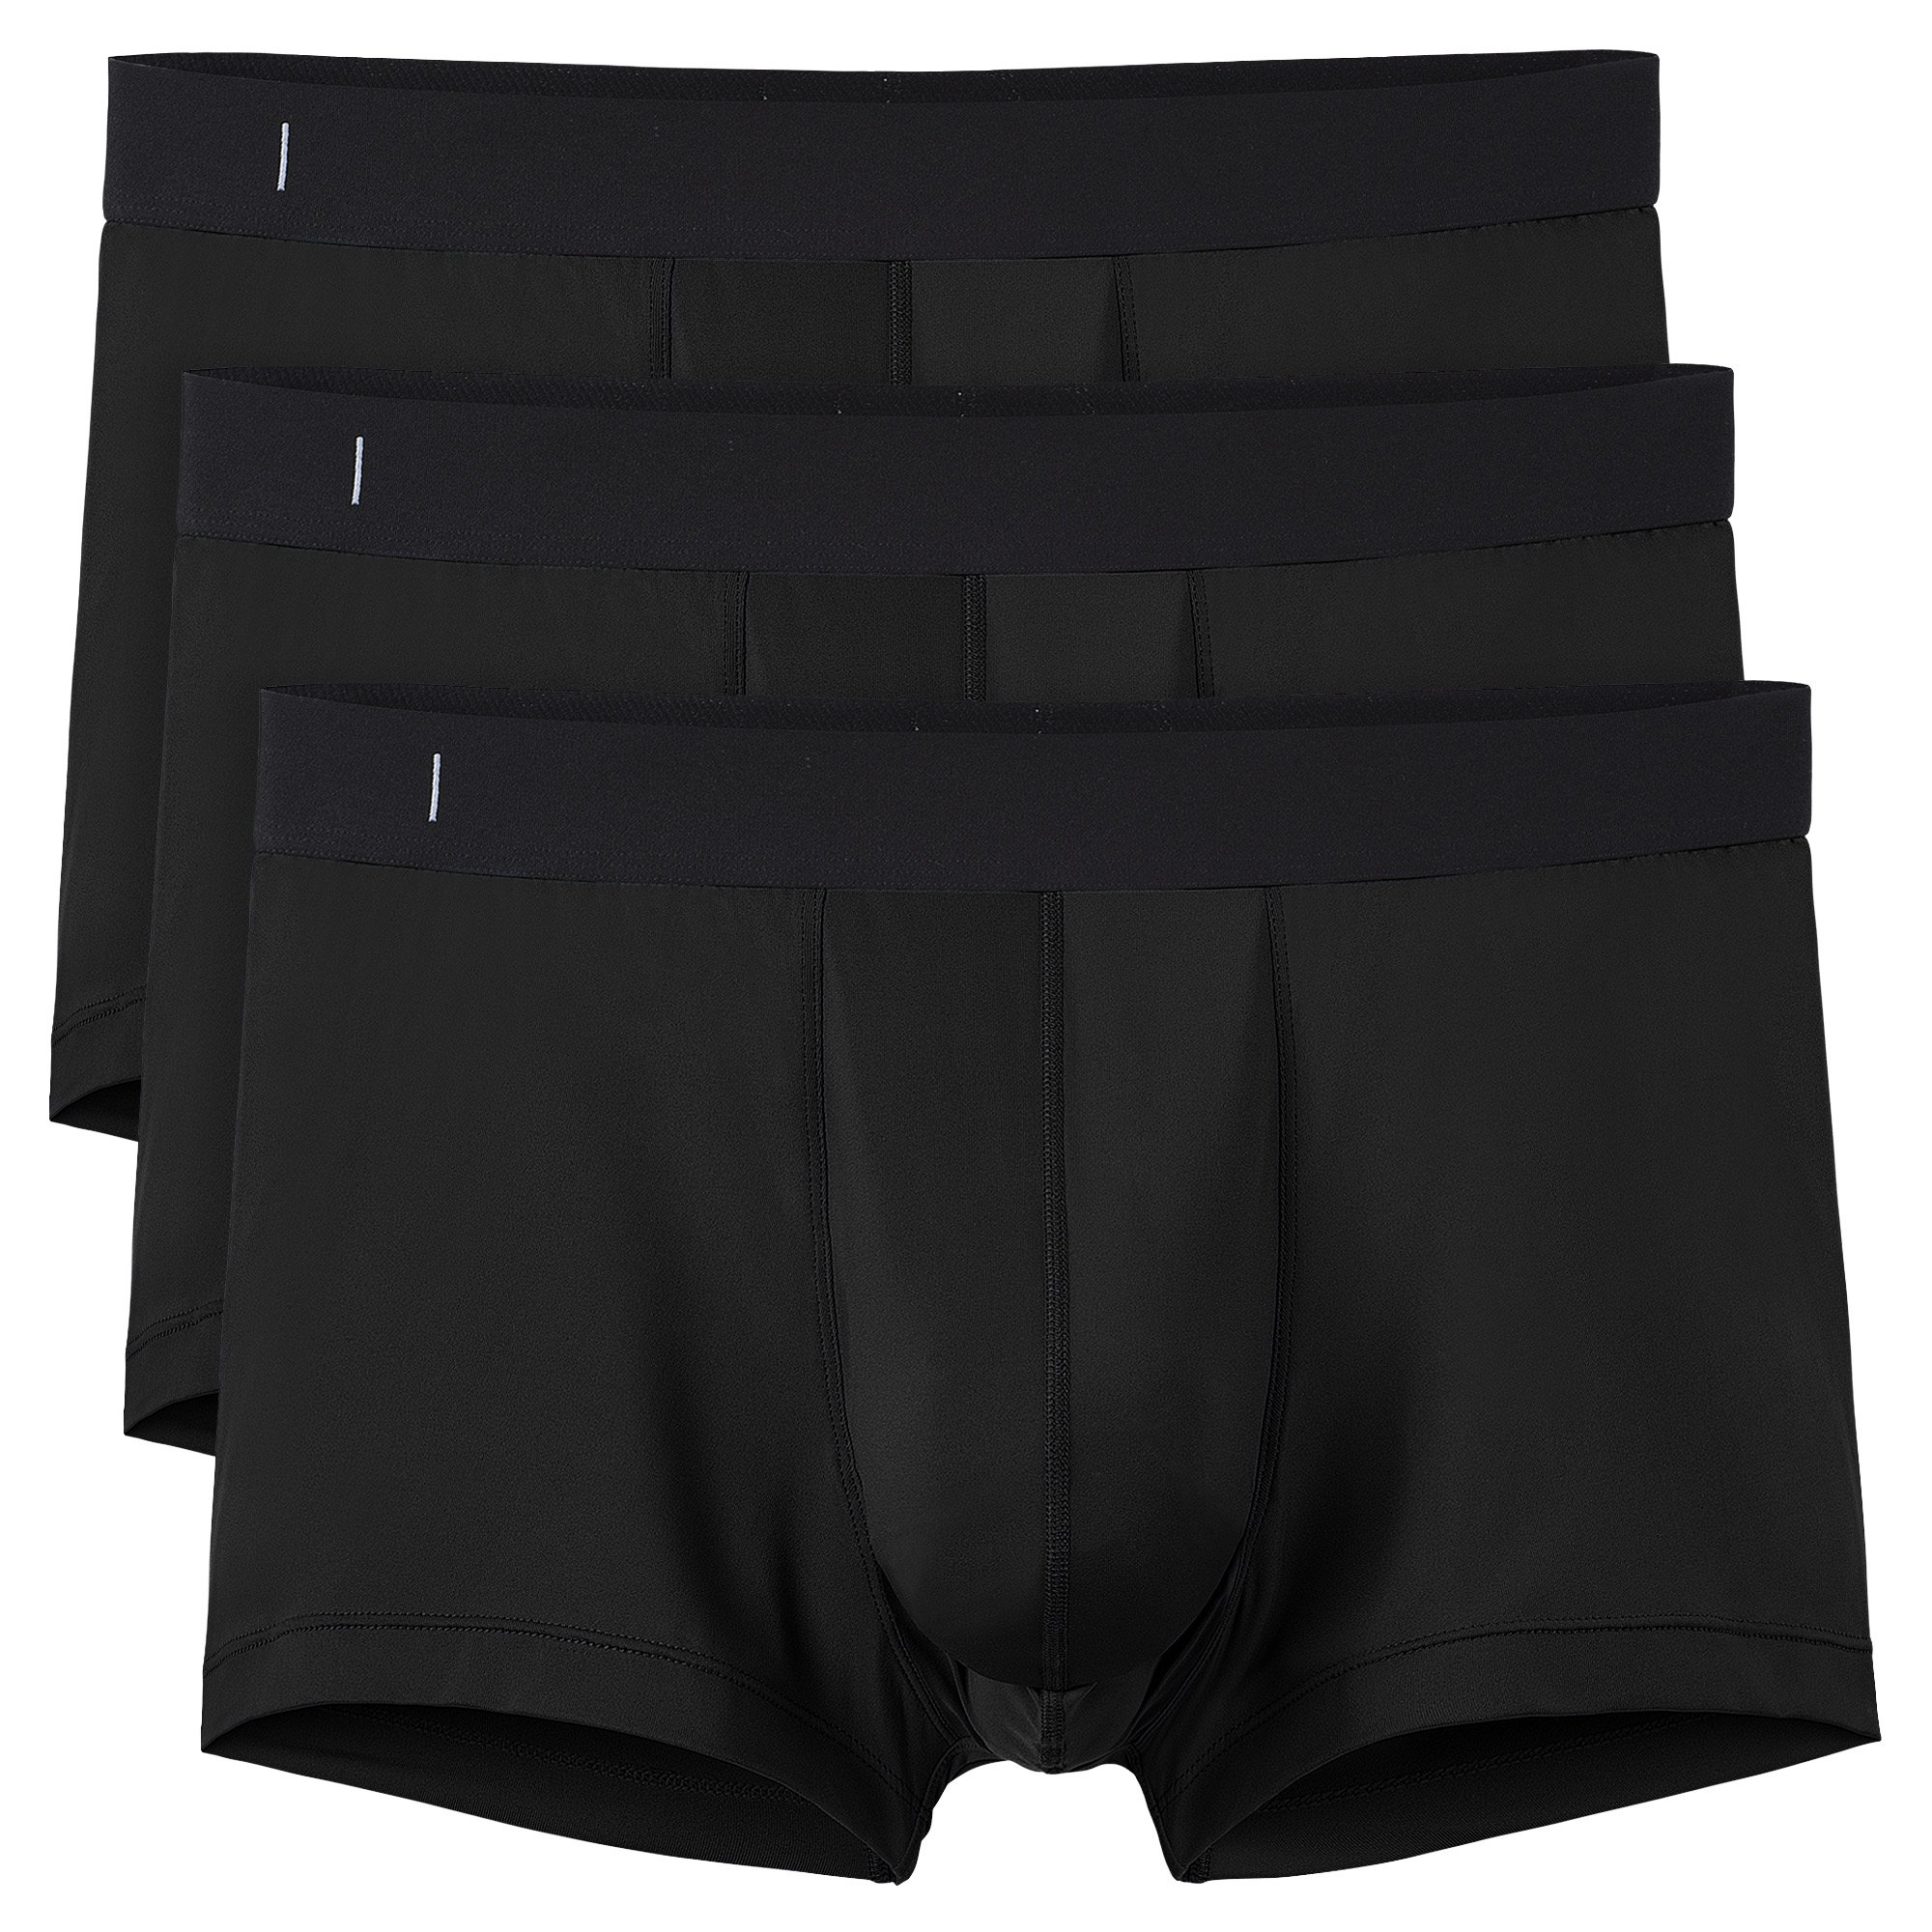 Separatec Men's 3 Pack Quick Dry Underwear Breathable Separate Pouch Trunks(XL,Black)